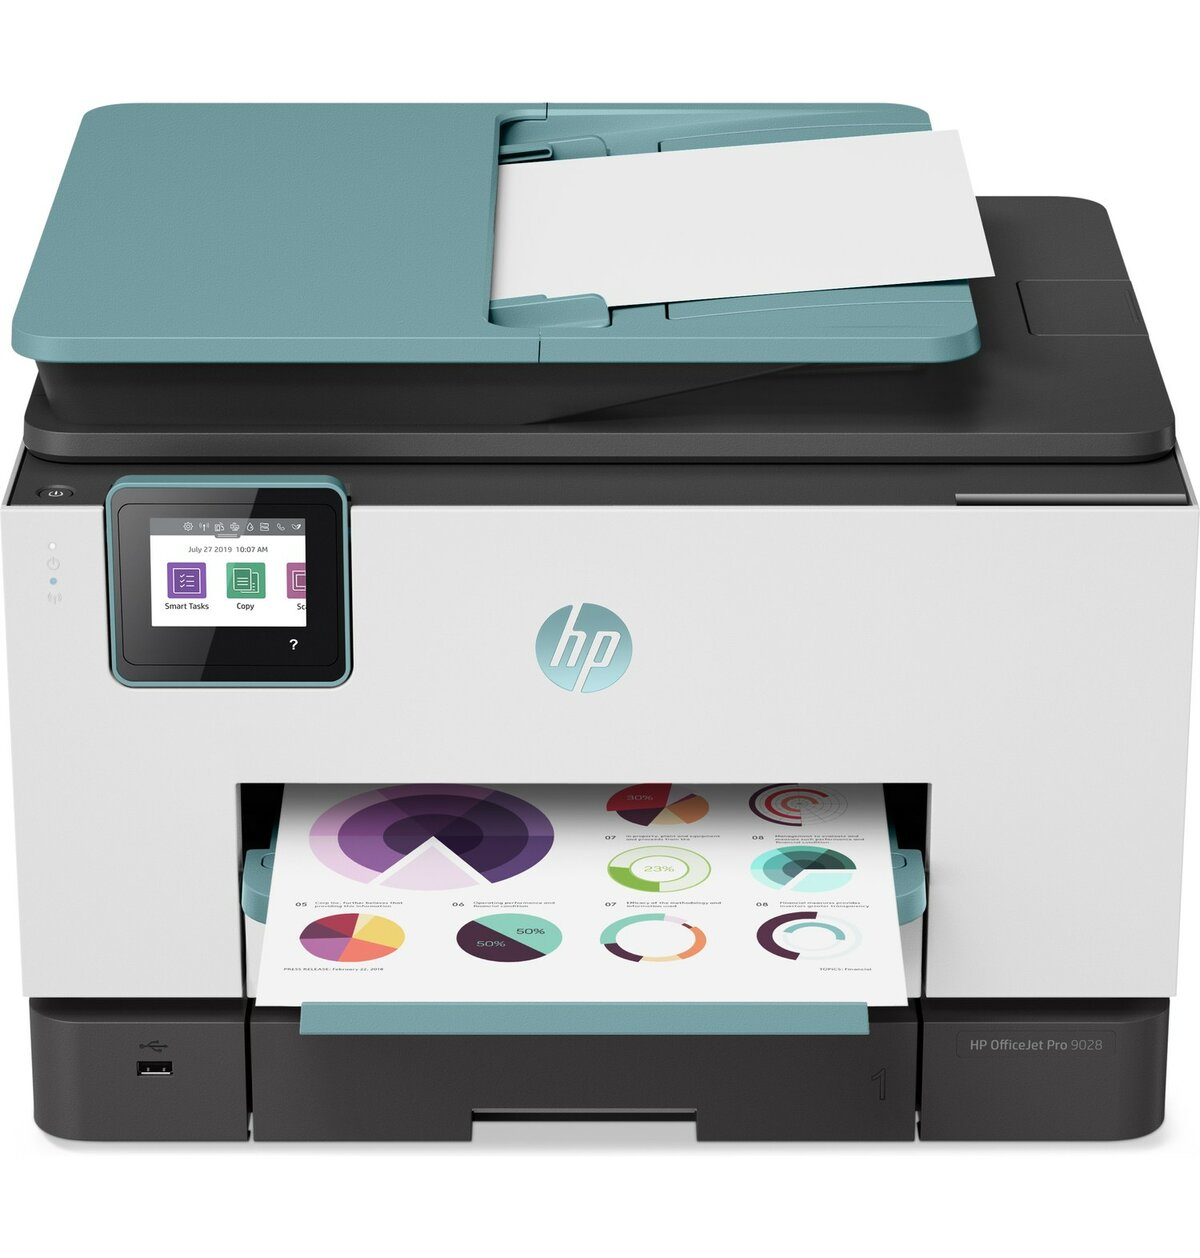 HP Officejet Pro 9028 Inkjet AiO MFC Printer (Oasis Blue)